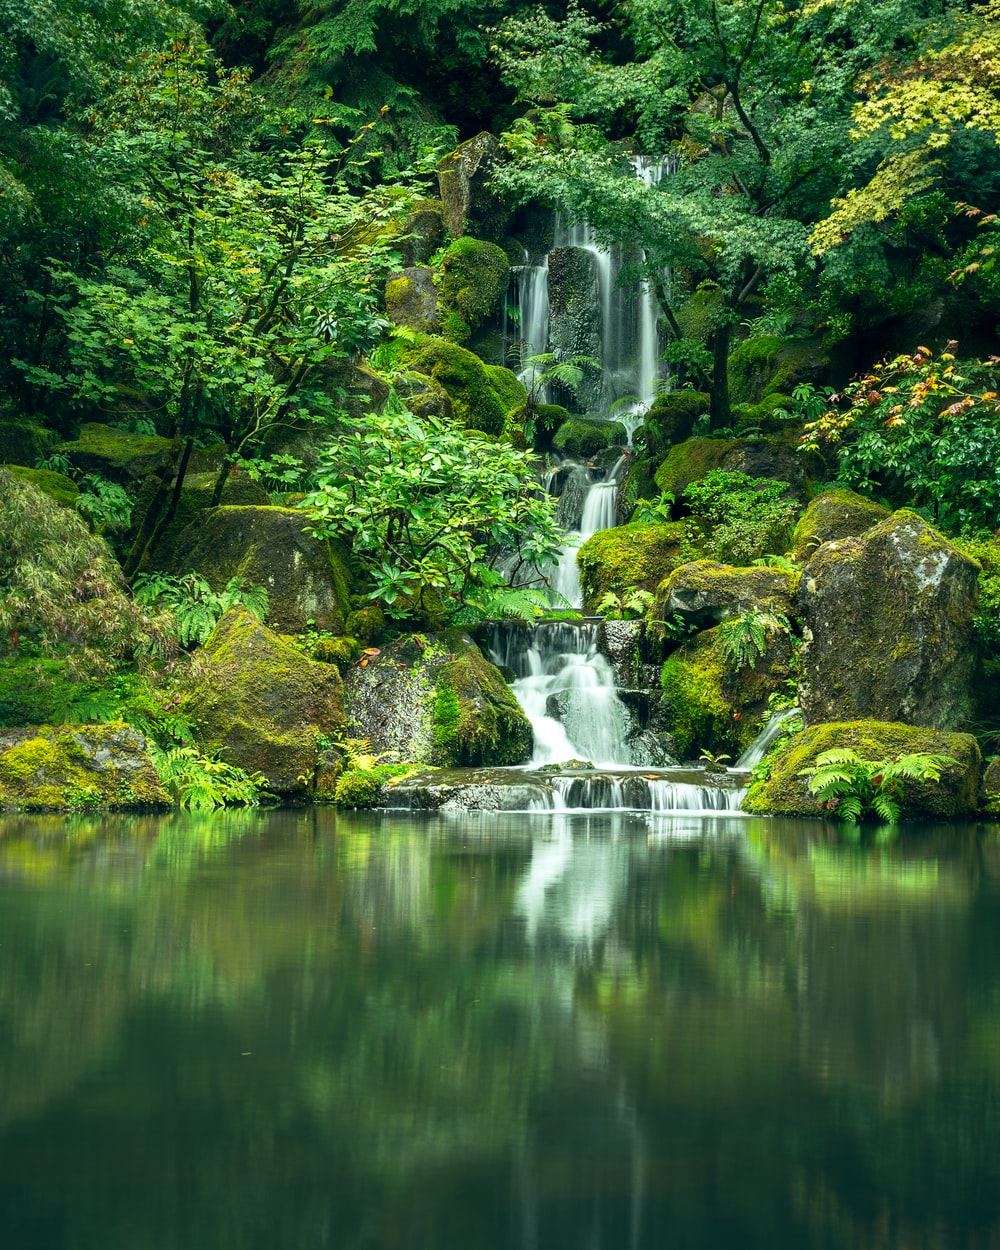 waterfalls surrounded by green-leafed trees during daytime